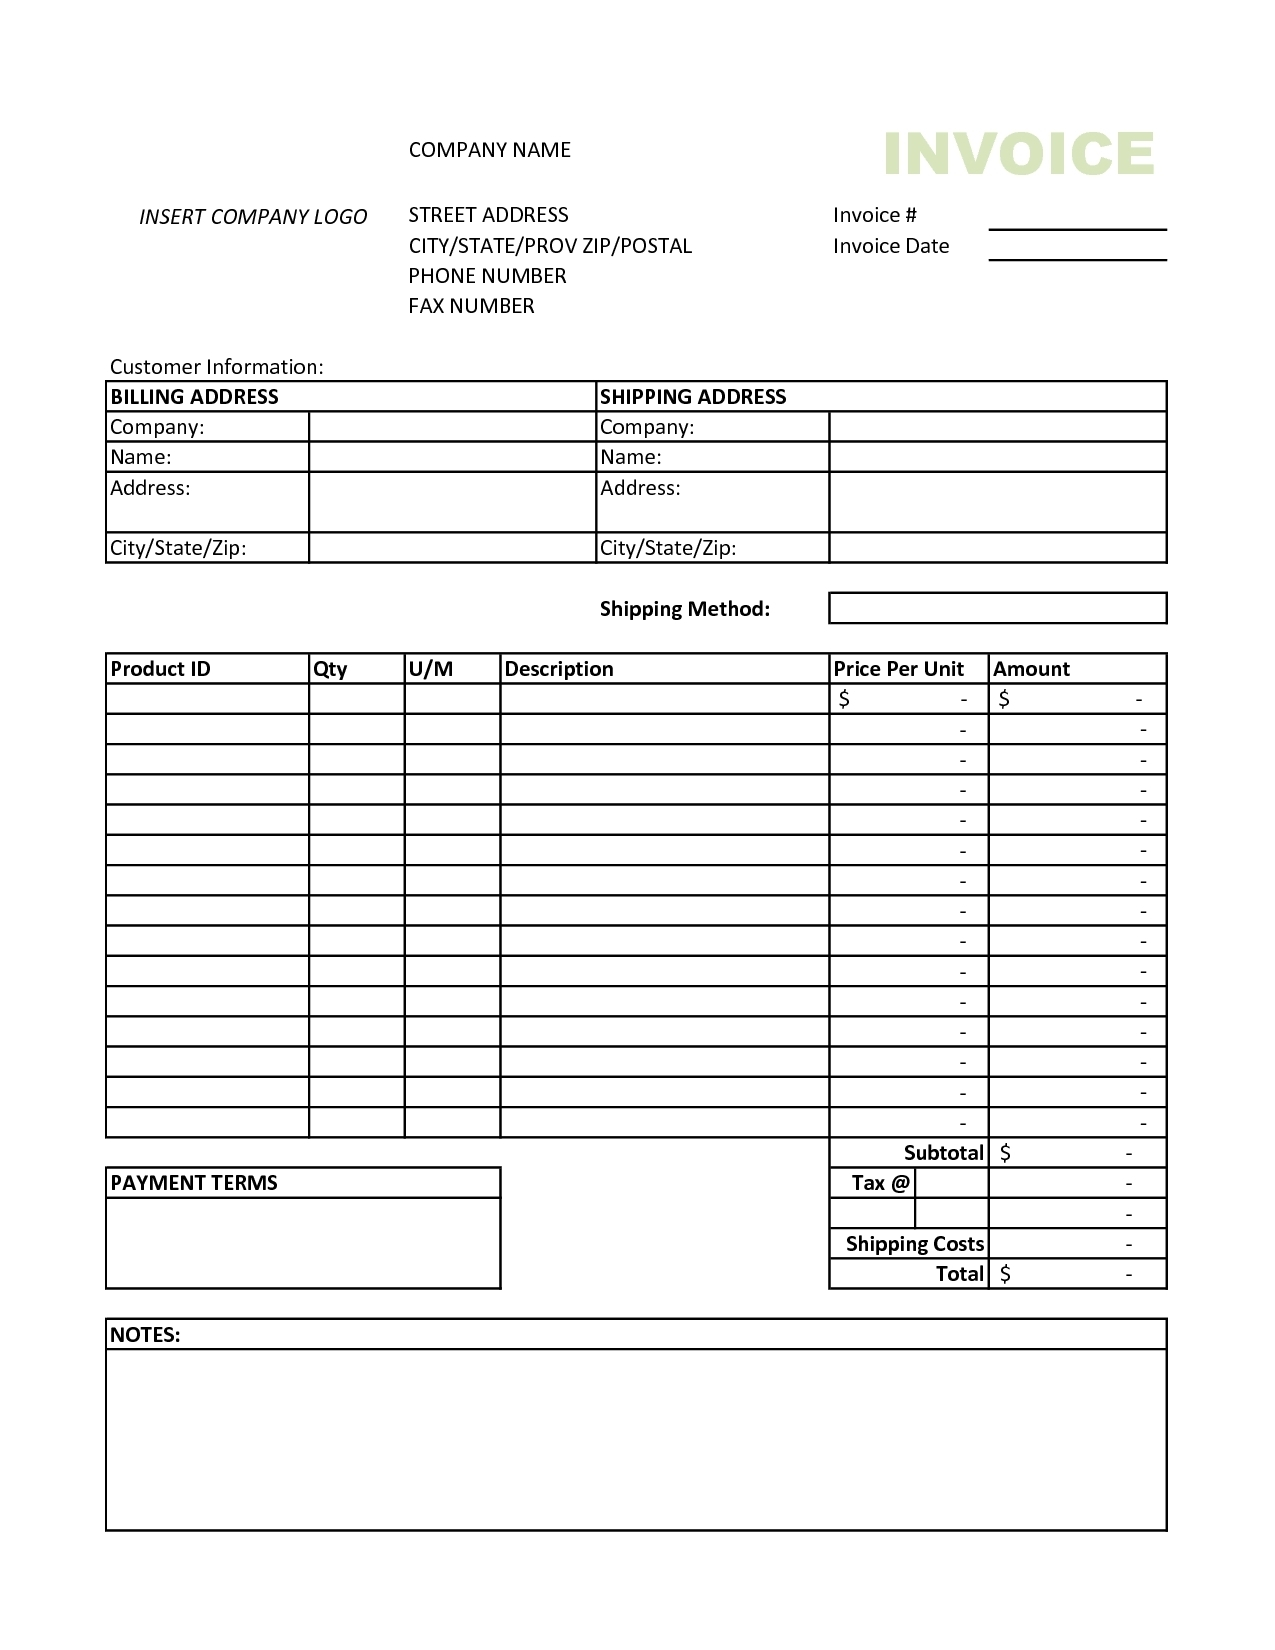 invoice template in excel 2010 invoice template ideas excel 2010 invoice template